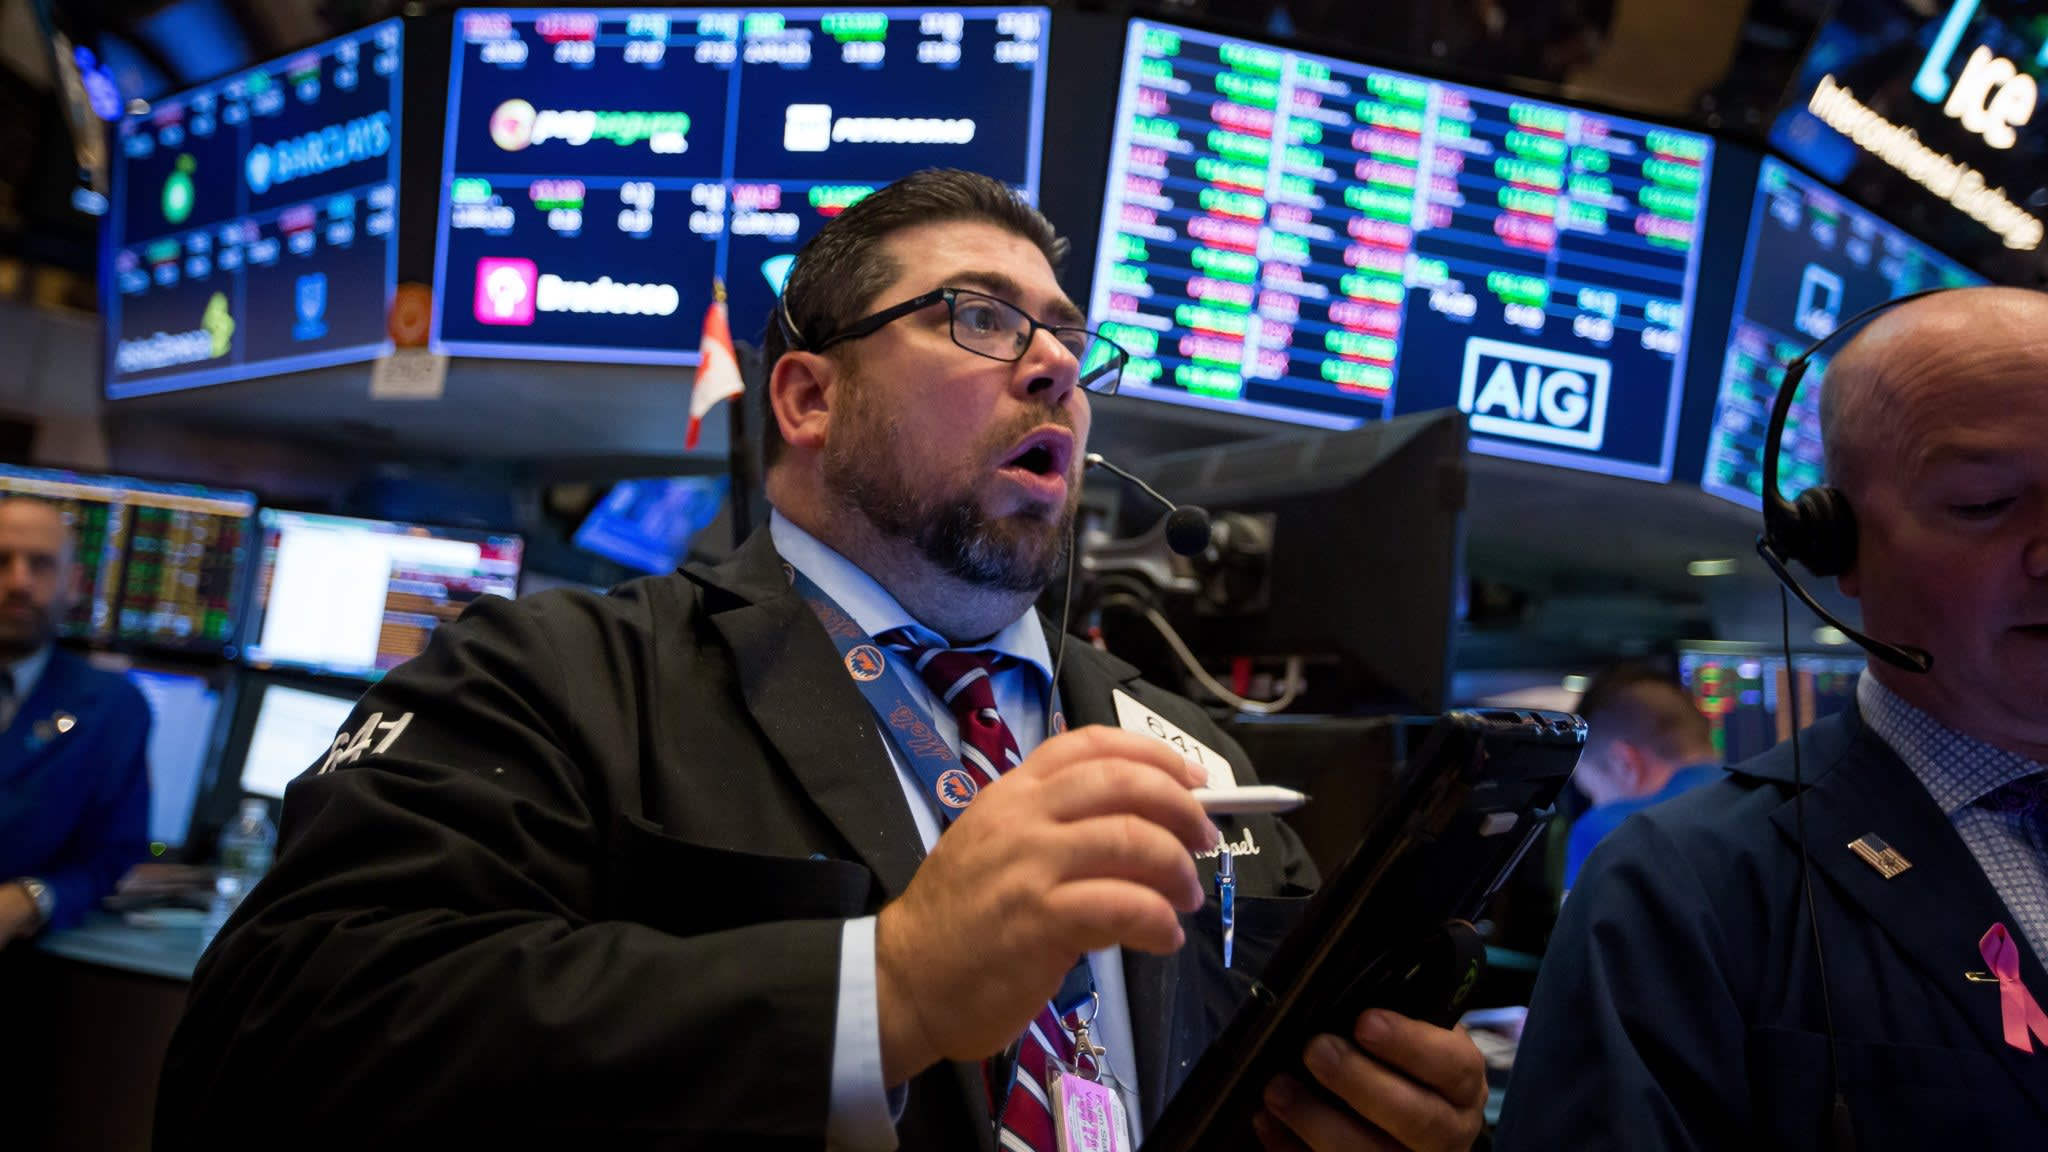 What is behind the global stock market sell-off?